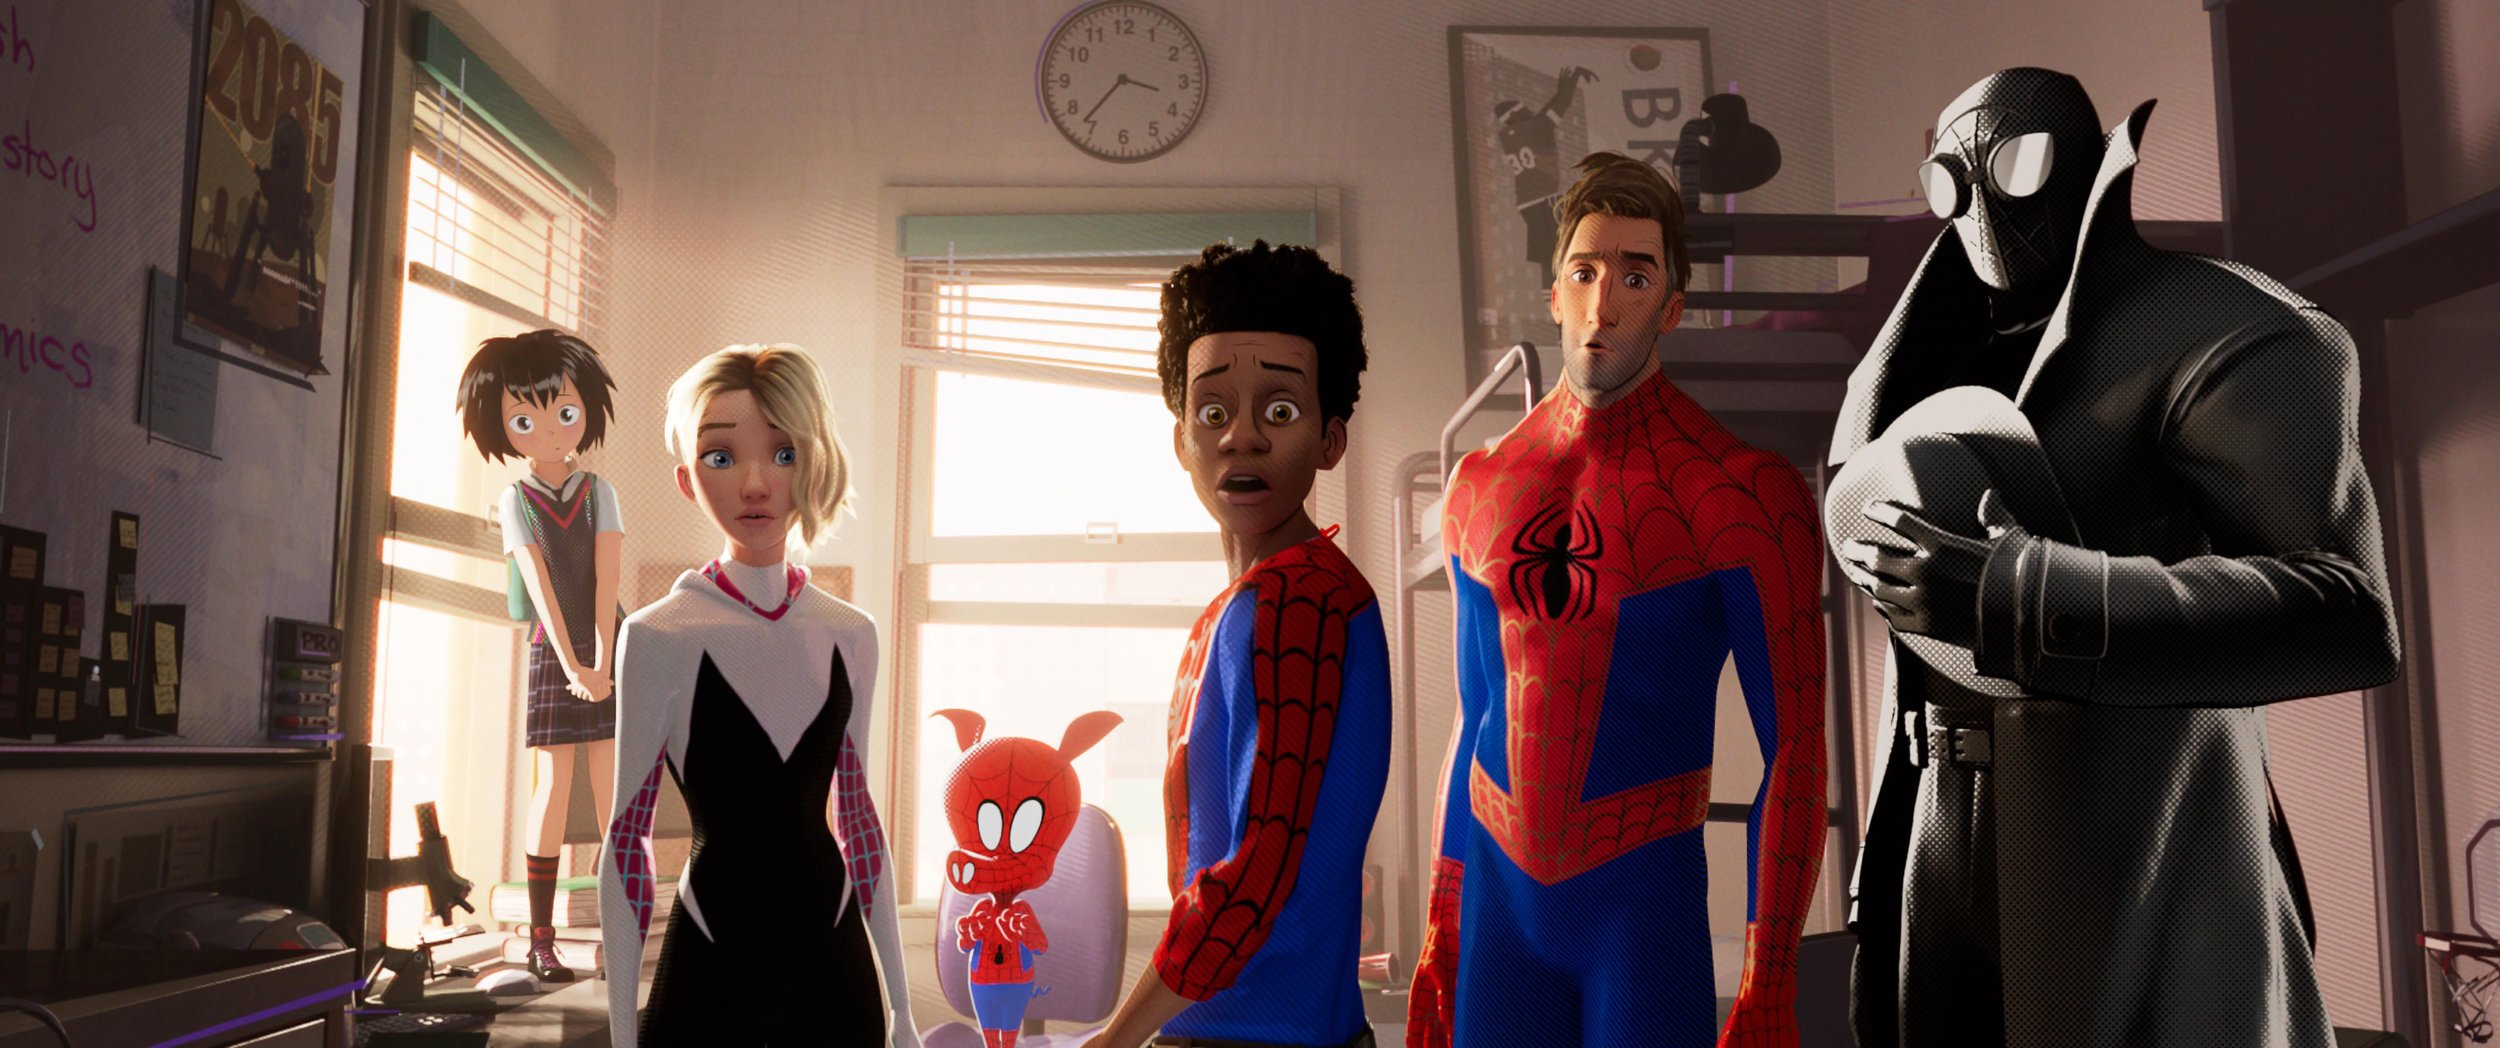 The late breaking 'Spider-Man' animated movie has positive buzz